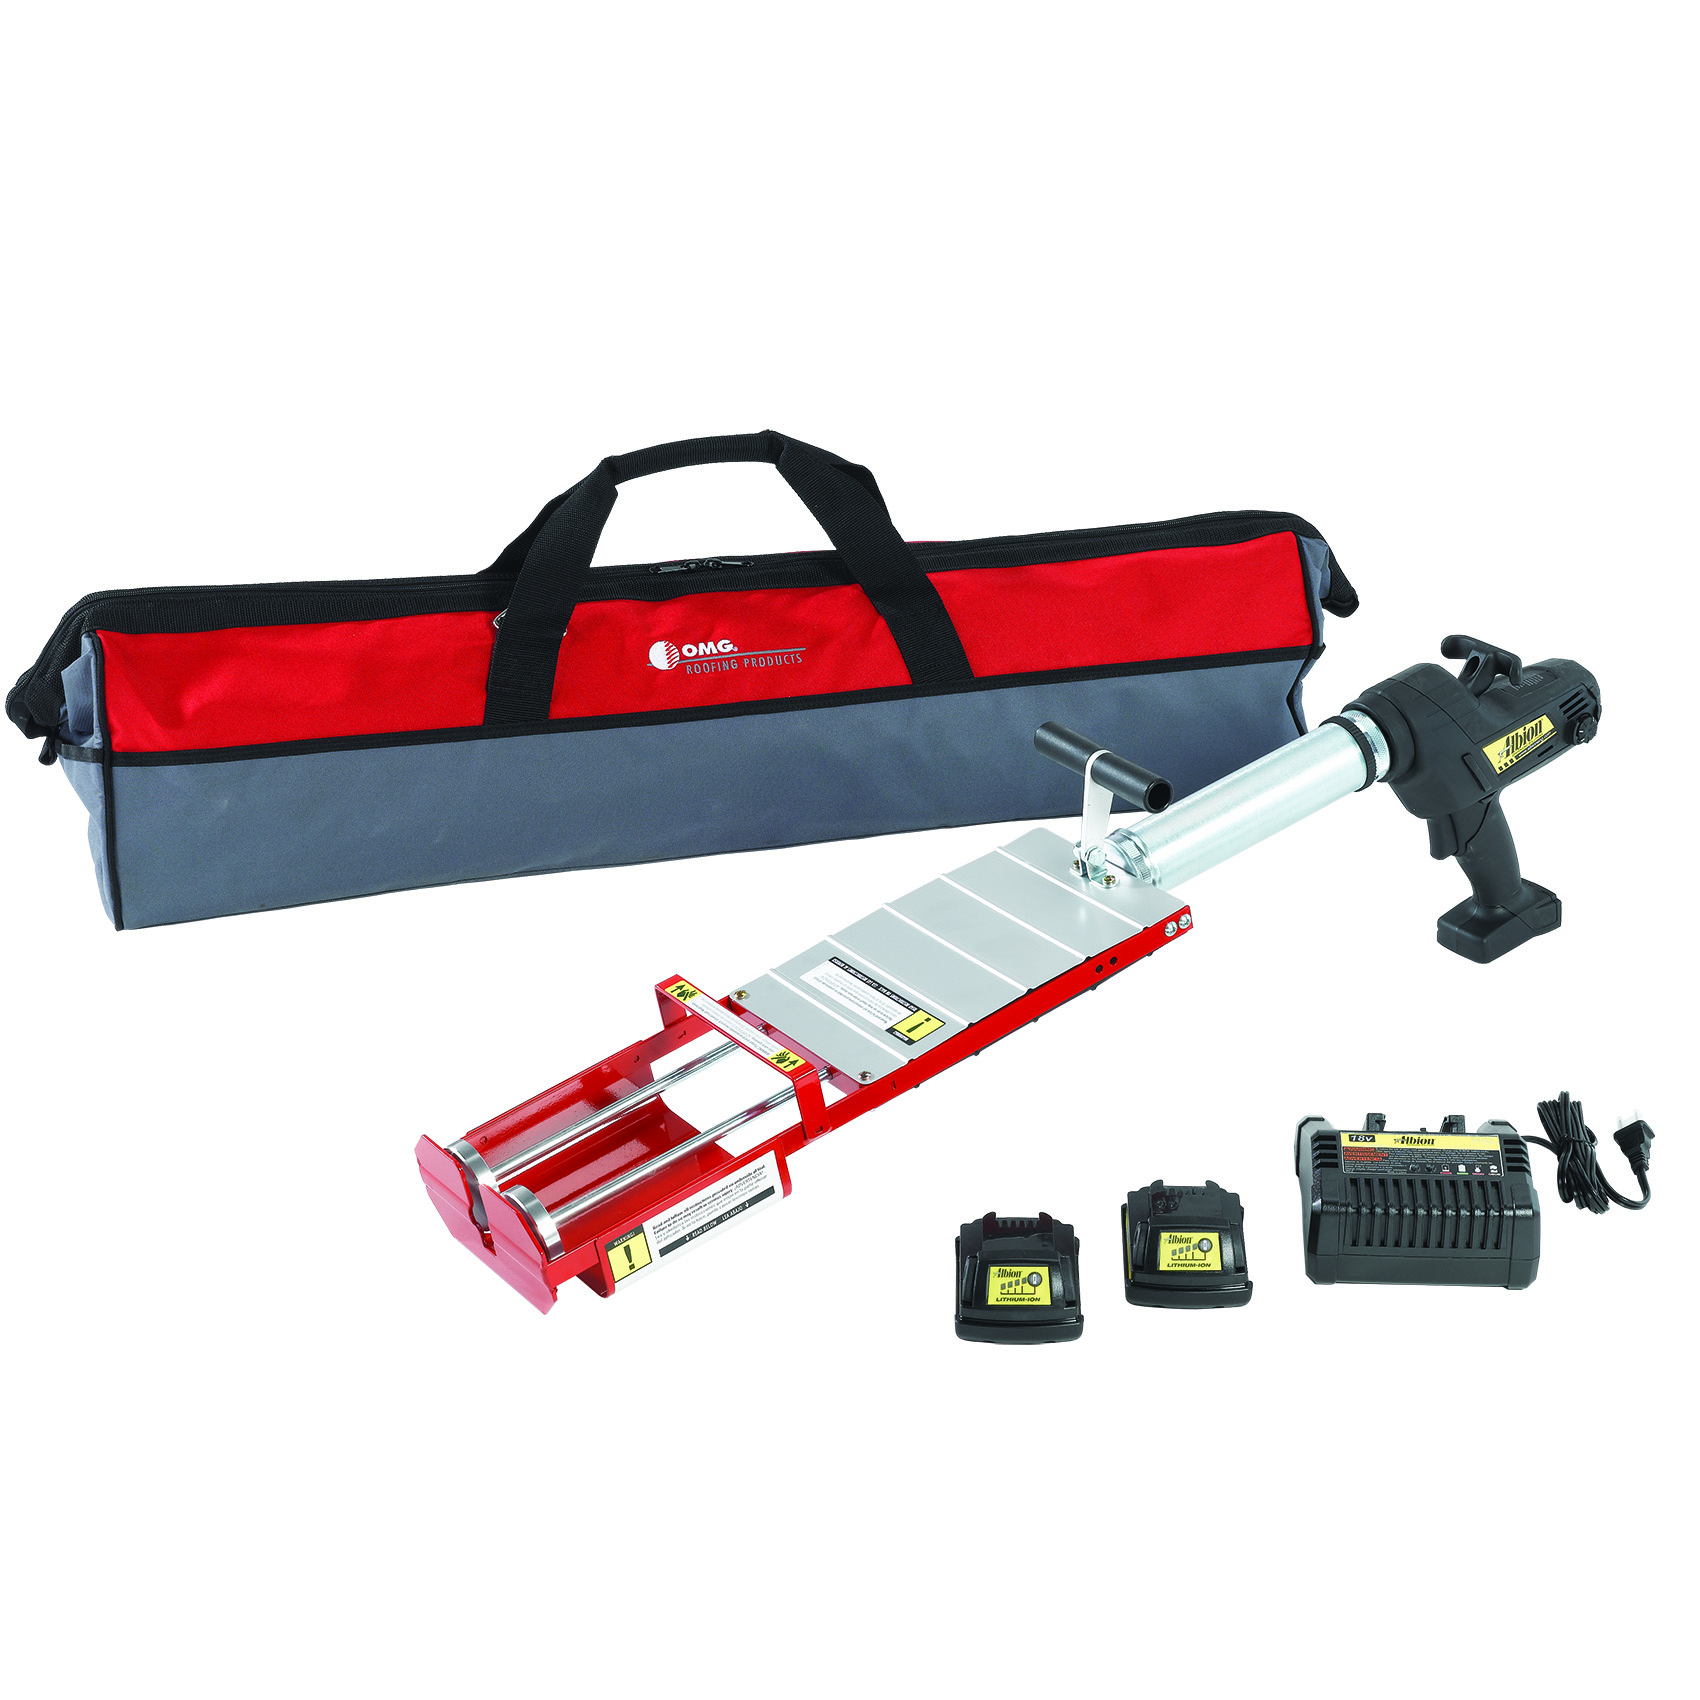 Image of SpotShot Cordless Power Applicator